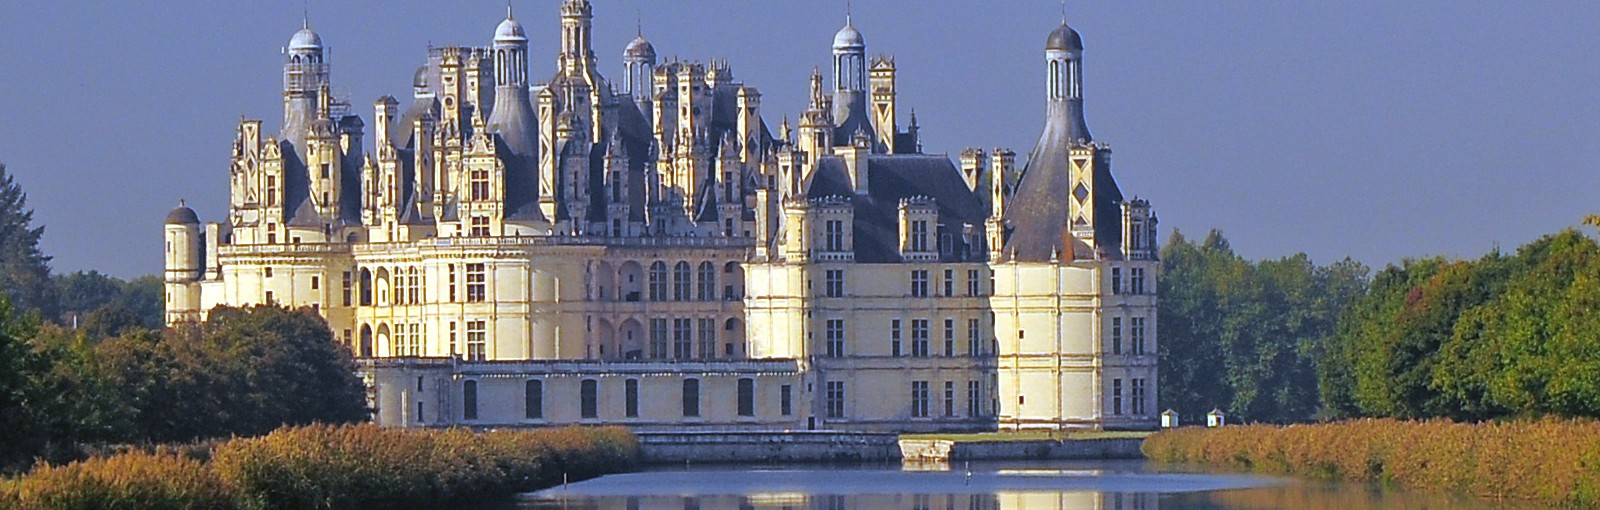 Tours Normandy, Mont-Saint-Michel, Castles of the Loire valley, Chartres and Versailles - Multi-regional - Multiday tours from Paris